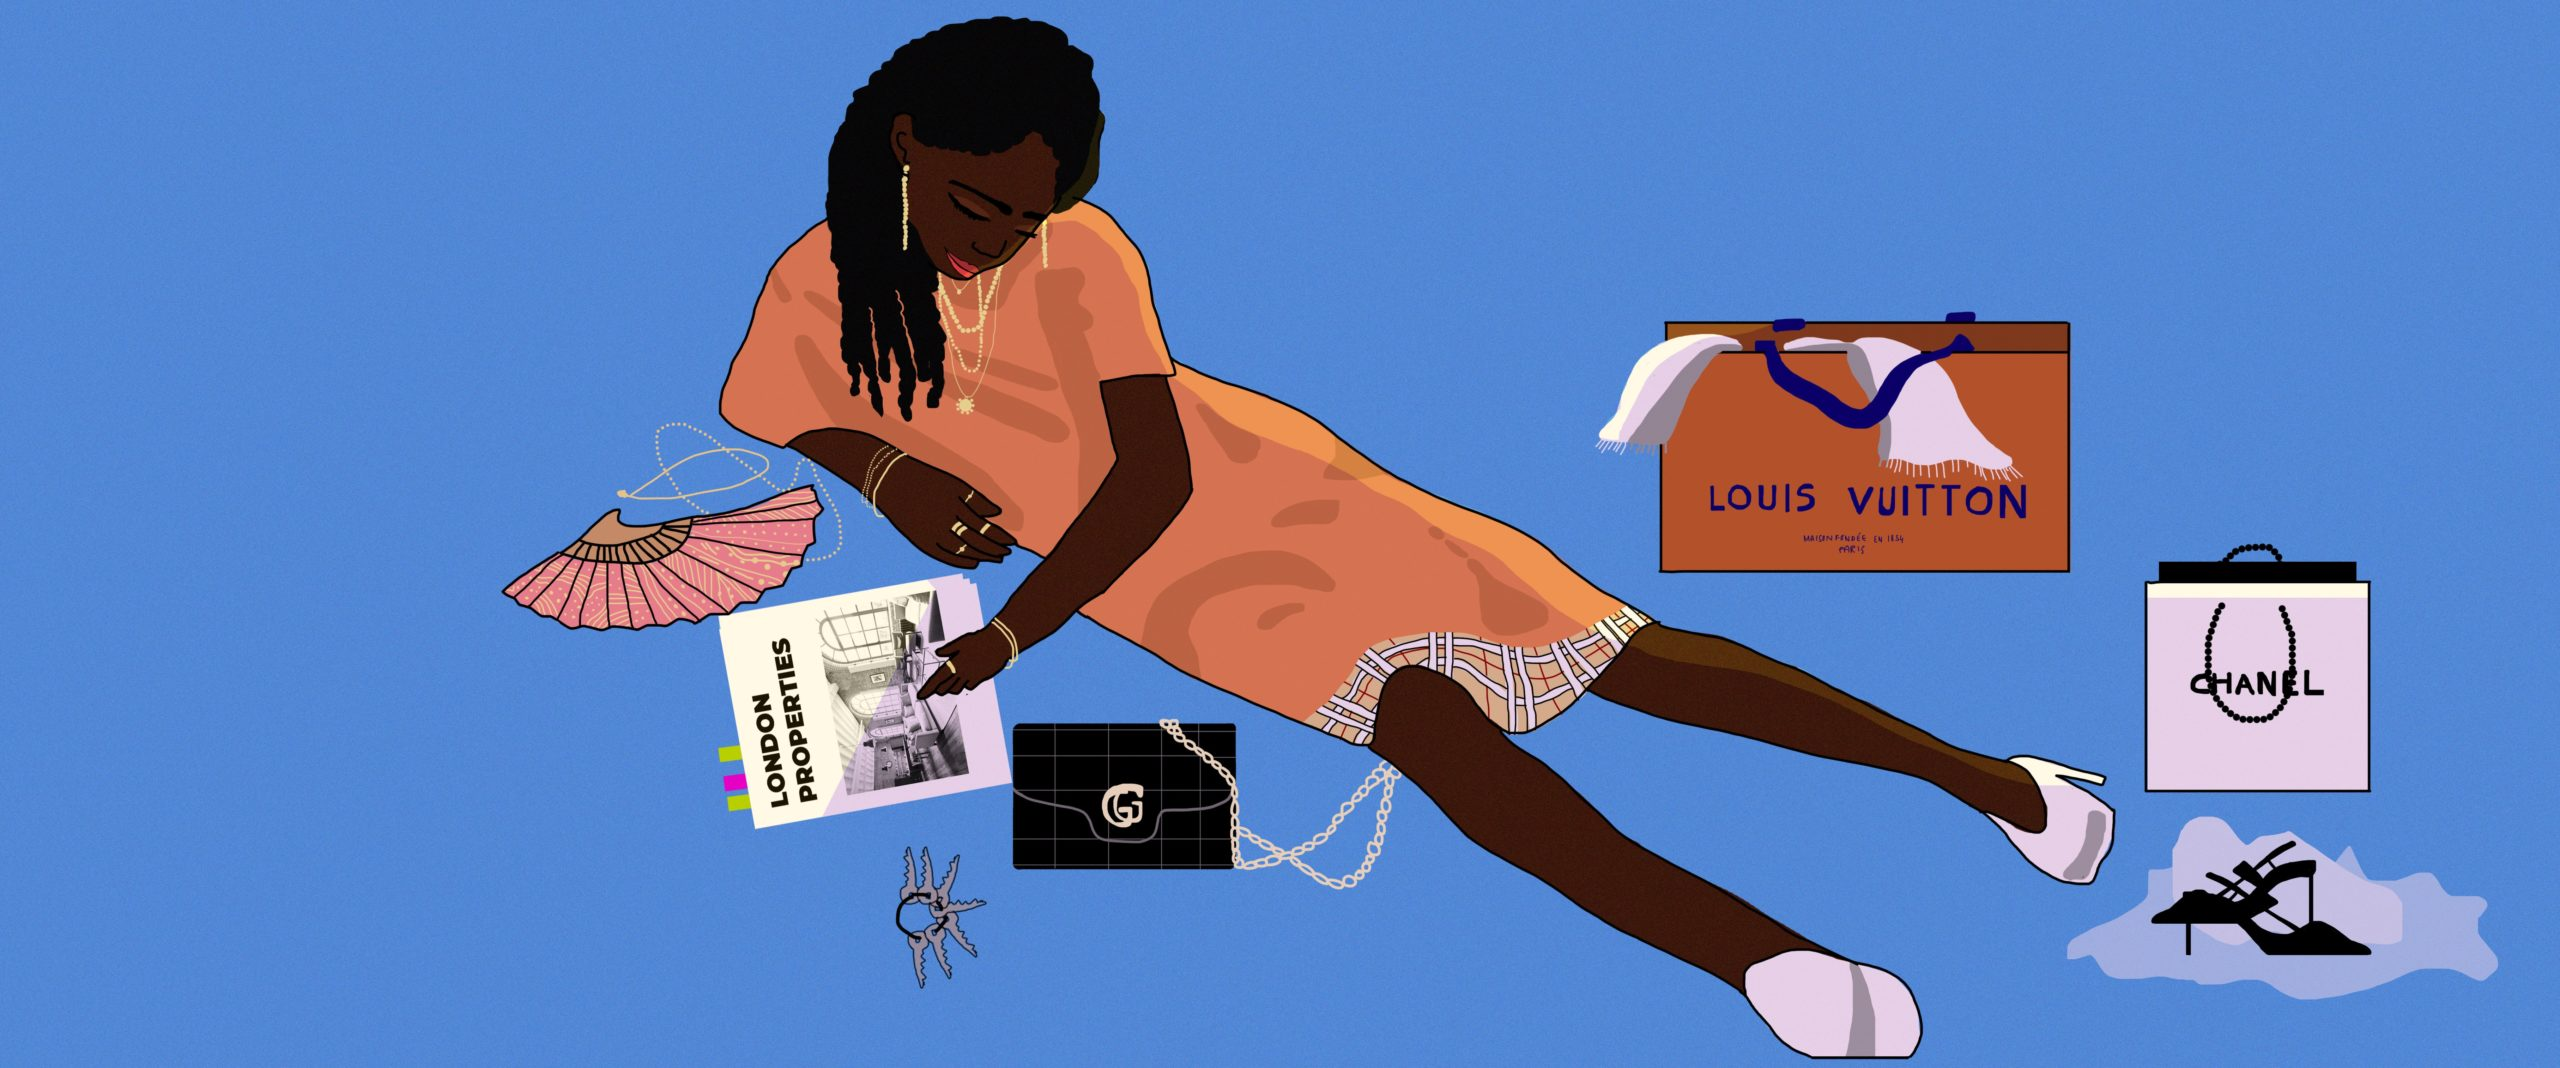 Living lavish: How Black capitalism took over the conversation in 2020